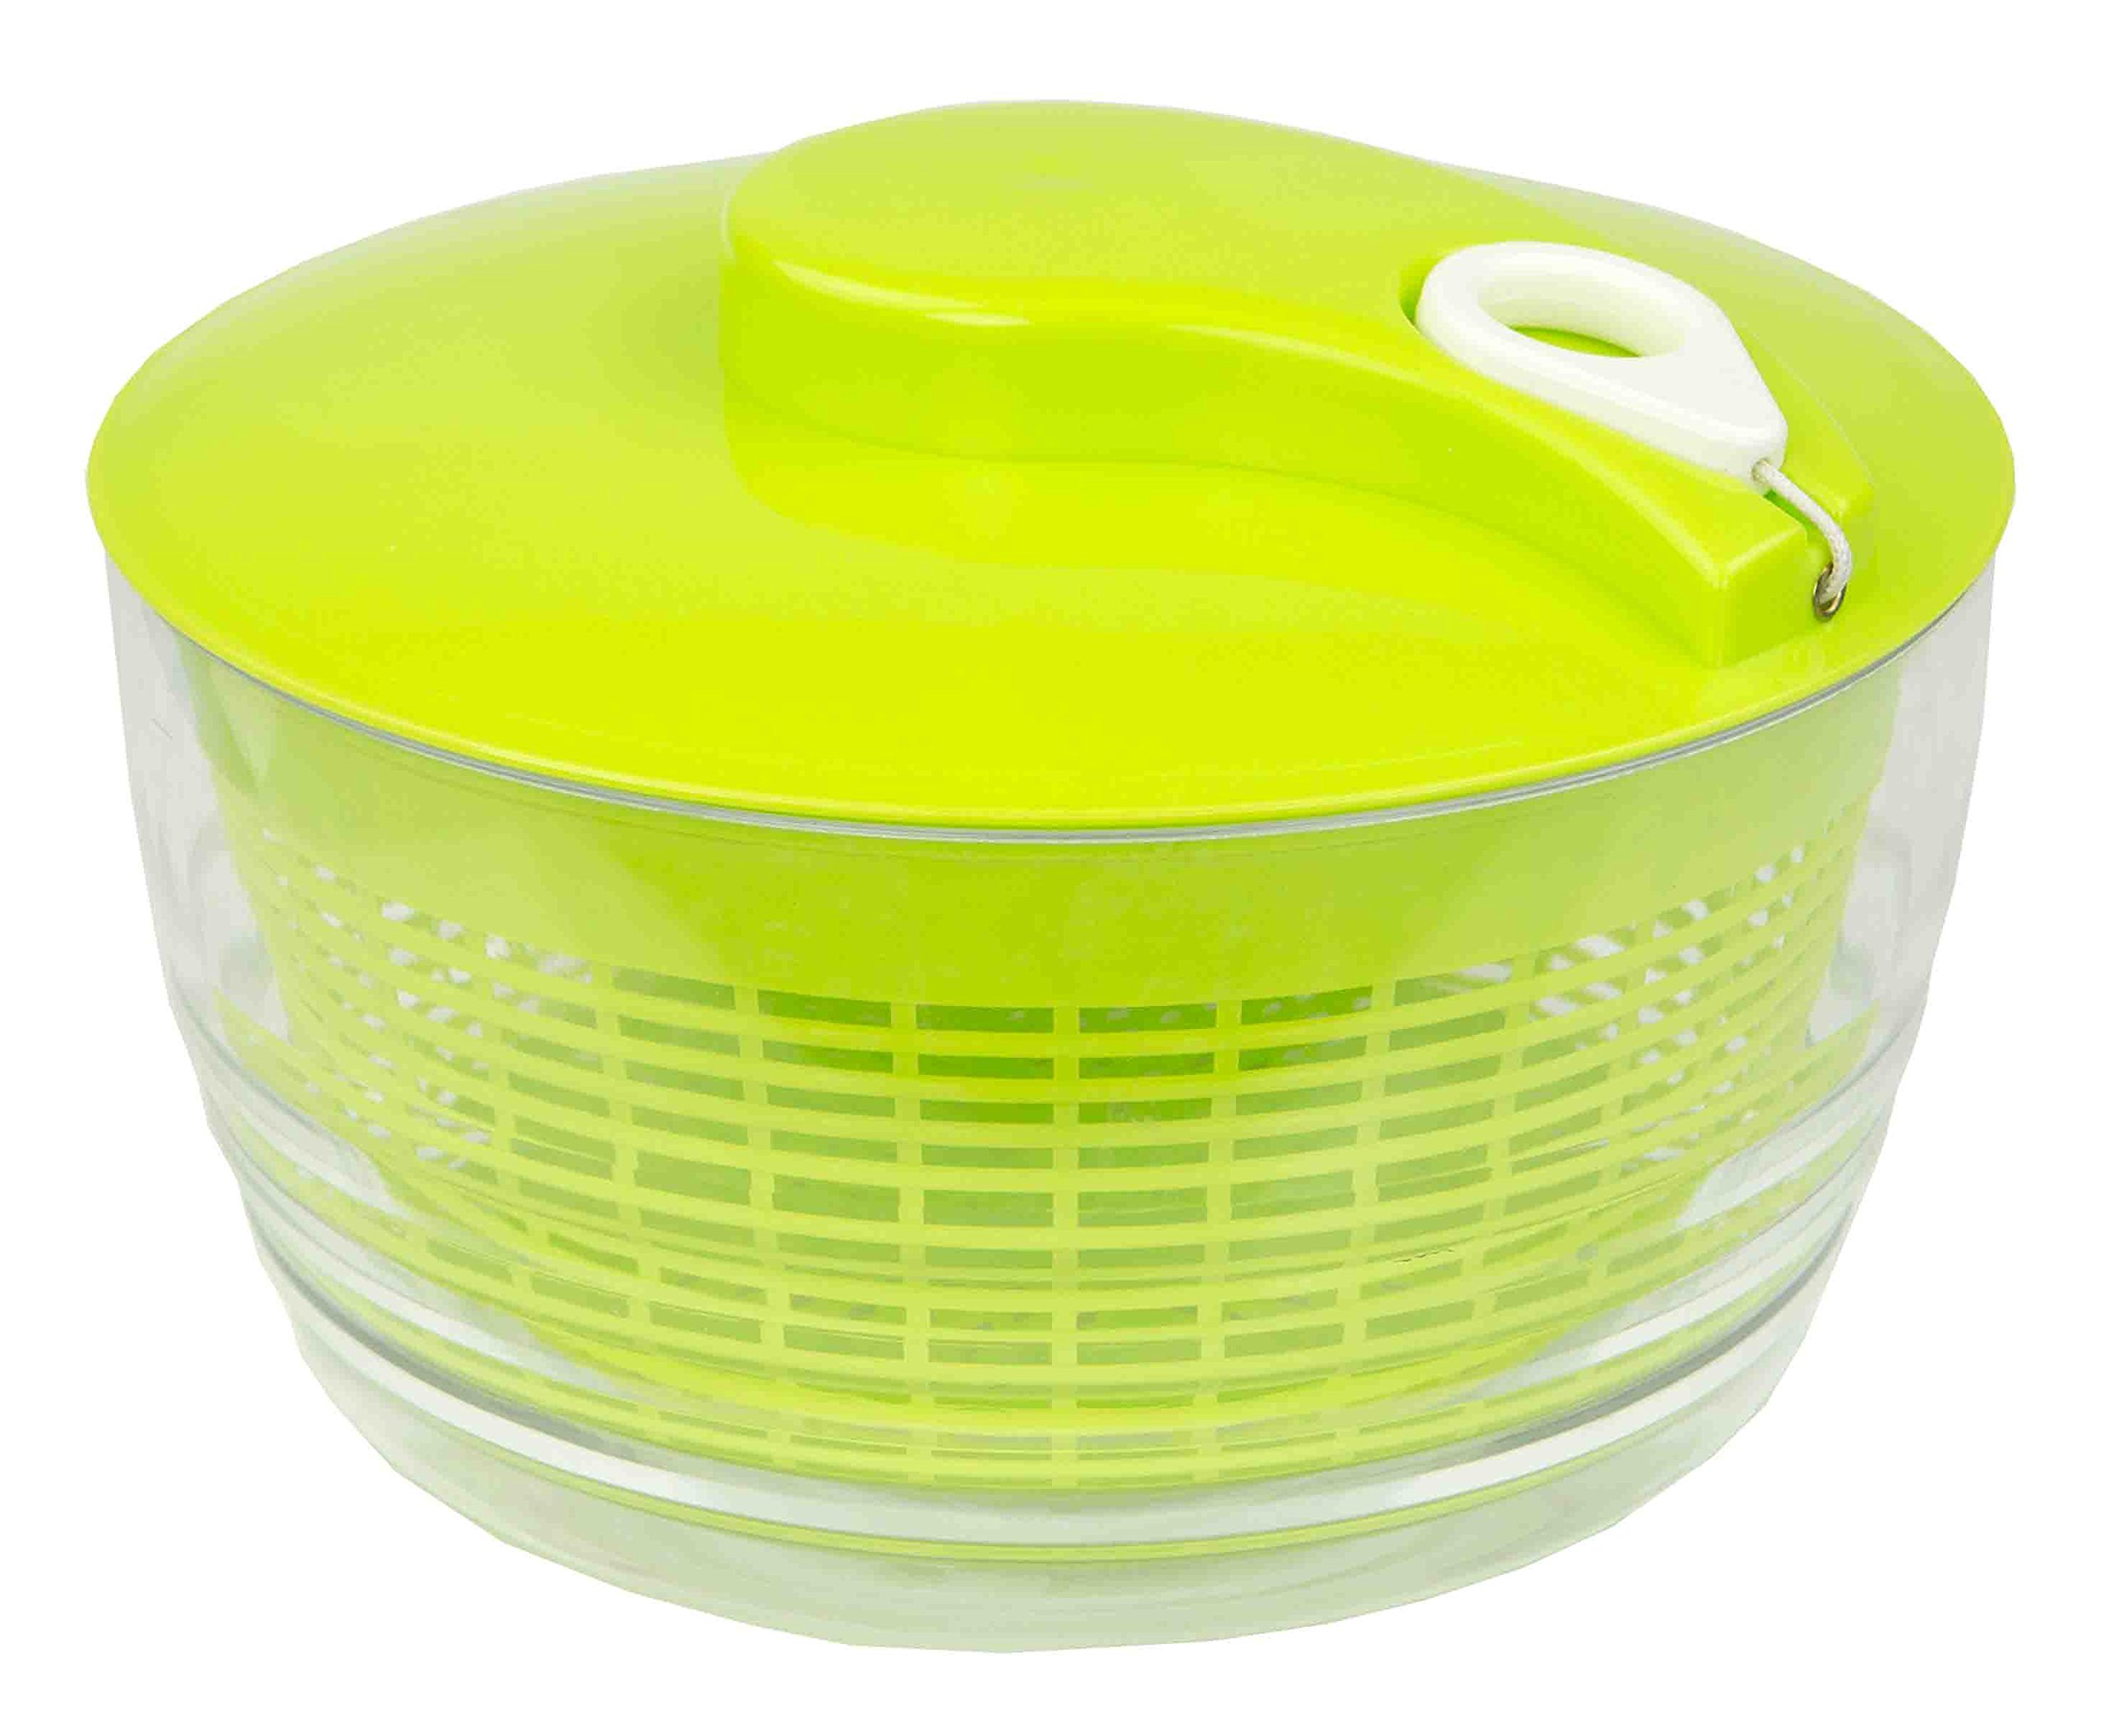 Home Basics Salad Spinner, Green and White (Spinner With Rip Chord)